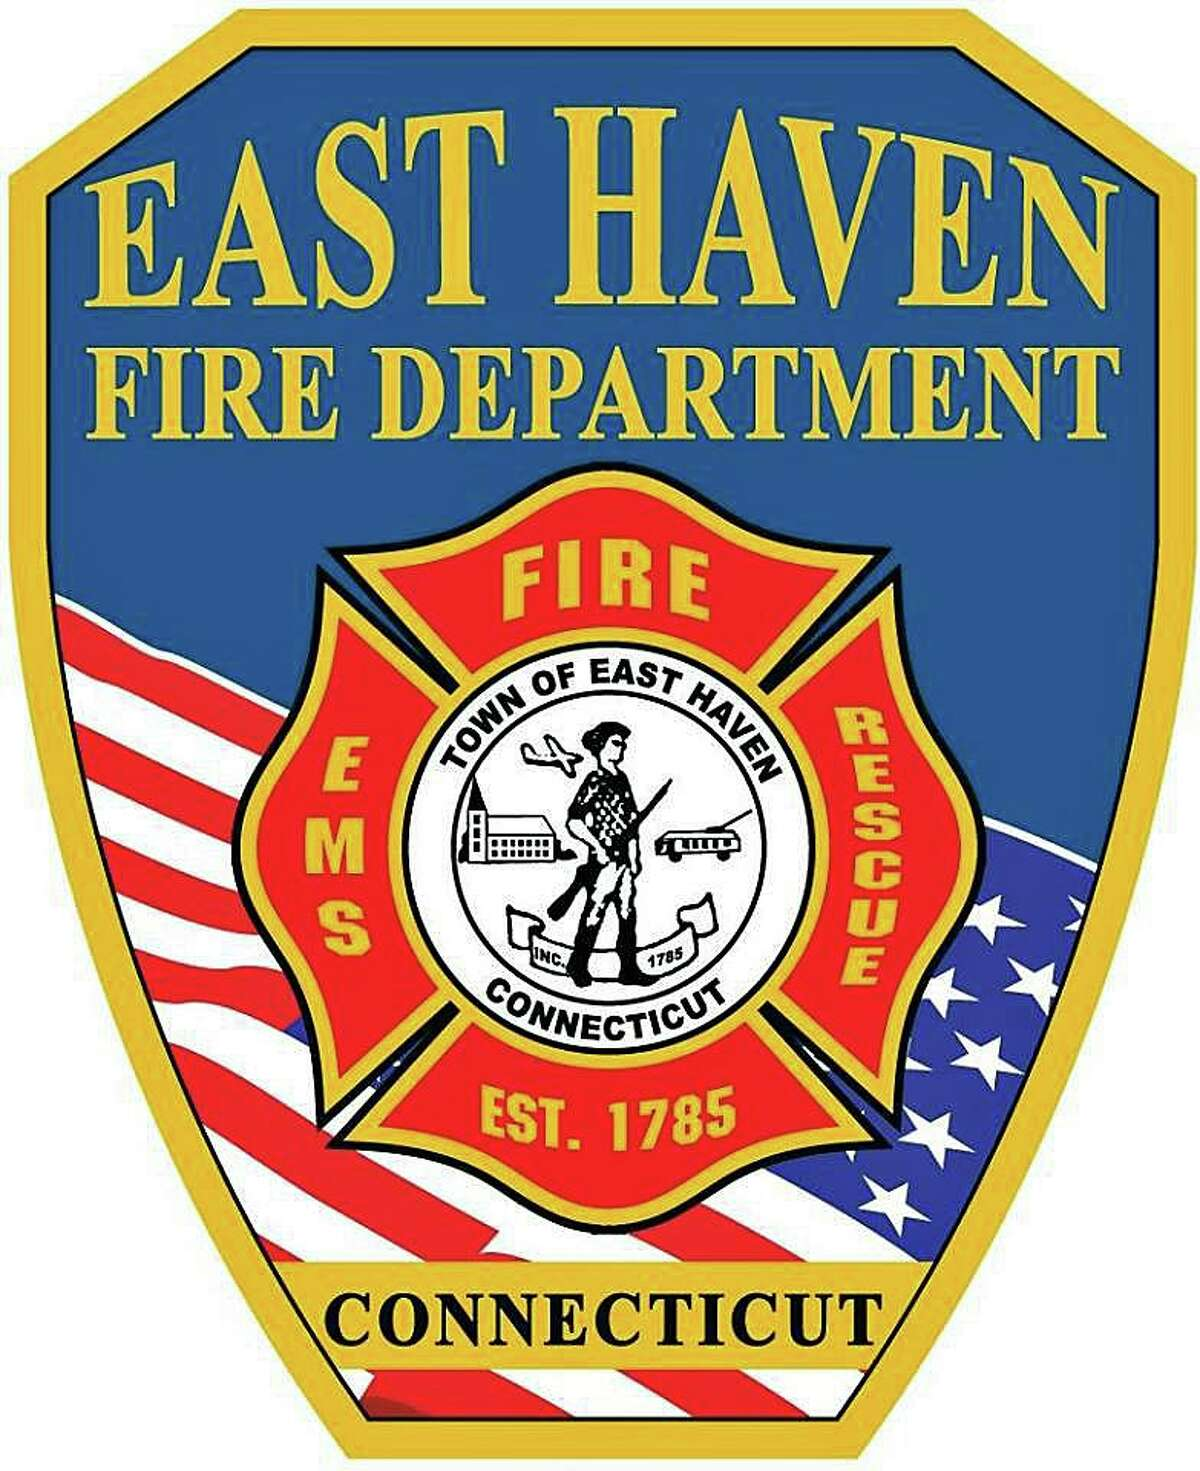 Fire Chief Matt Marcarelli and Mayor Joseph Maturo announced that award in a news release on Friday. The grant will go directly to the fire department and will be used to purchase new self-contained breathing apparatus and a new breathing air compressor.